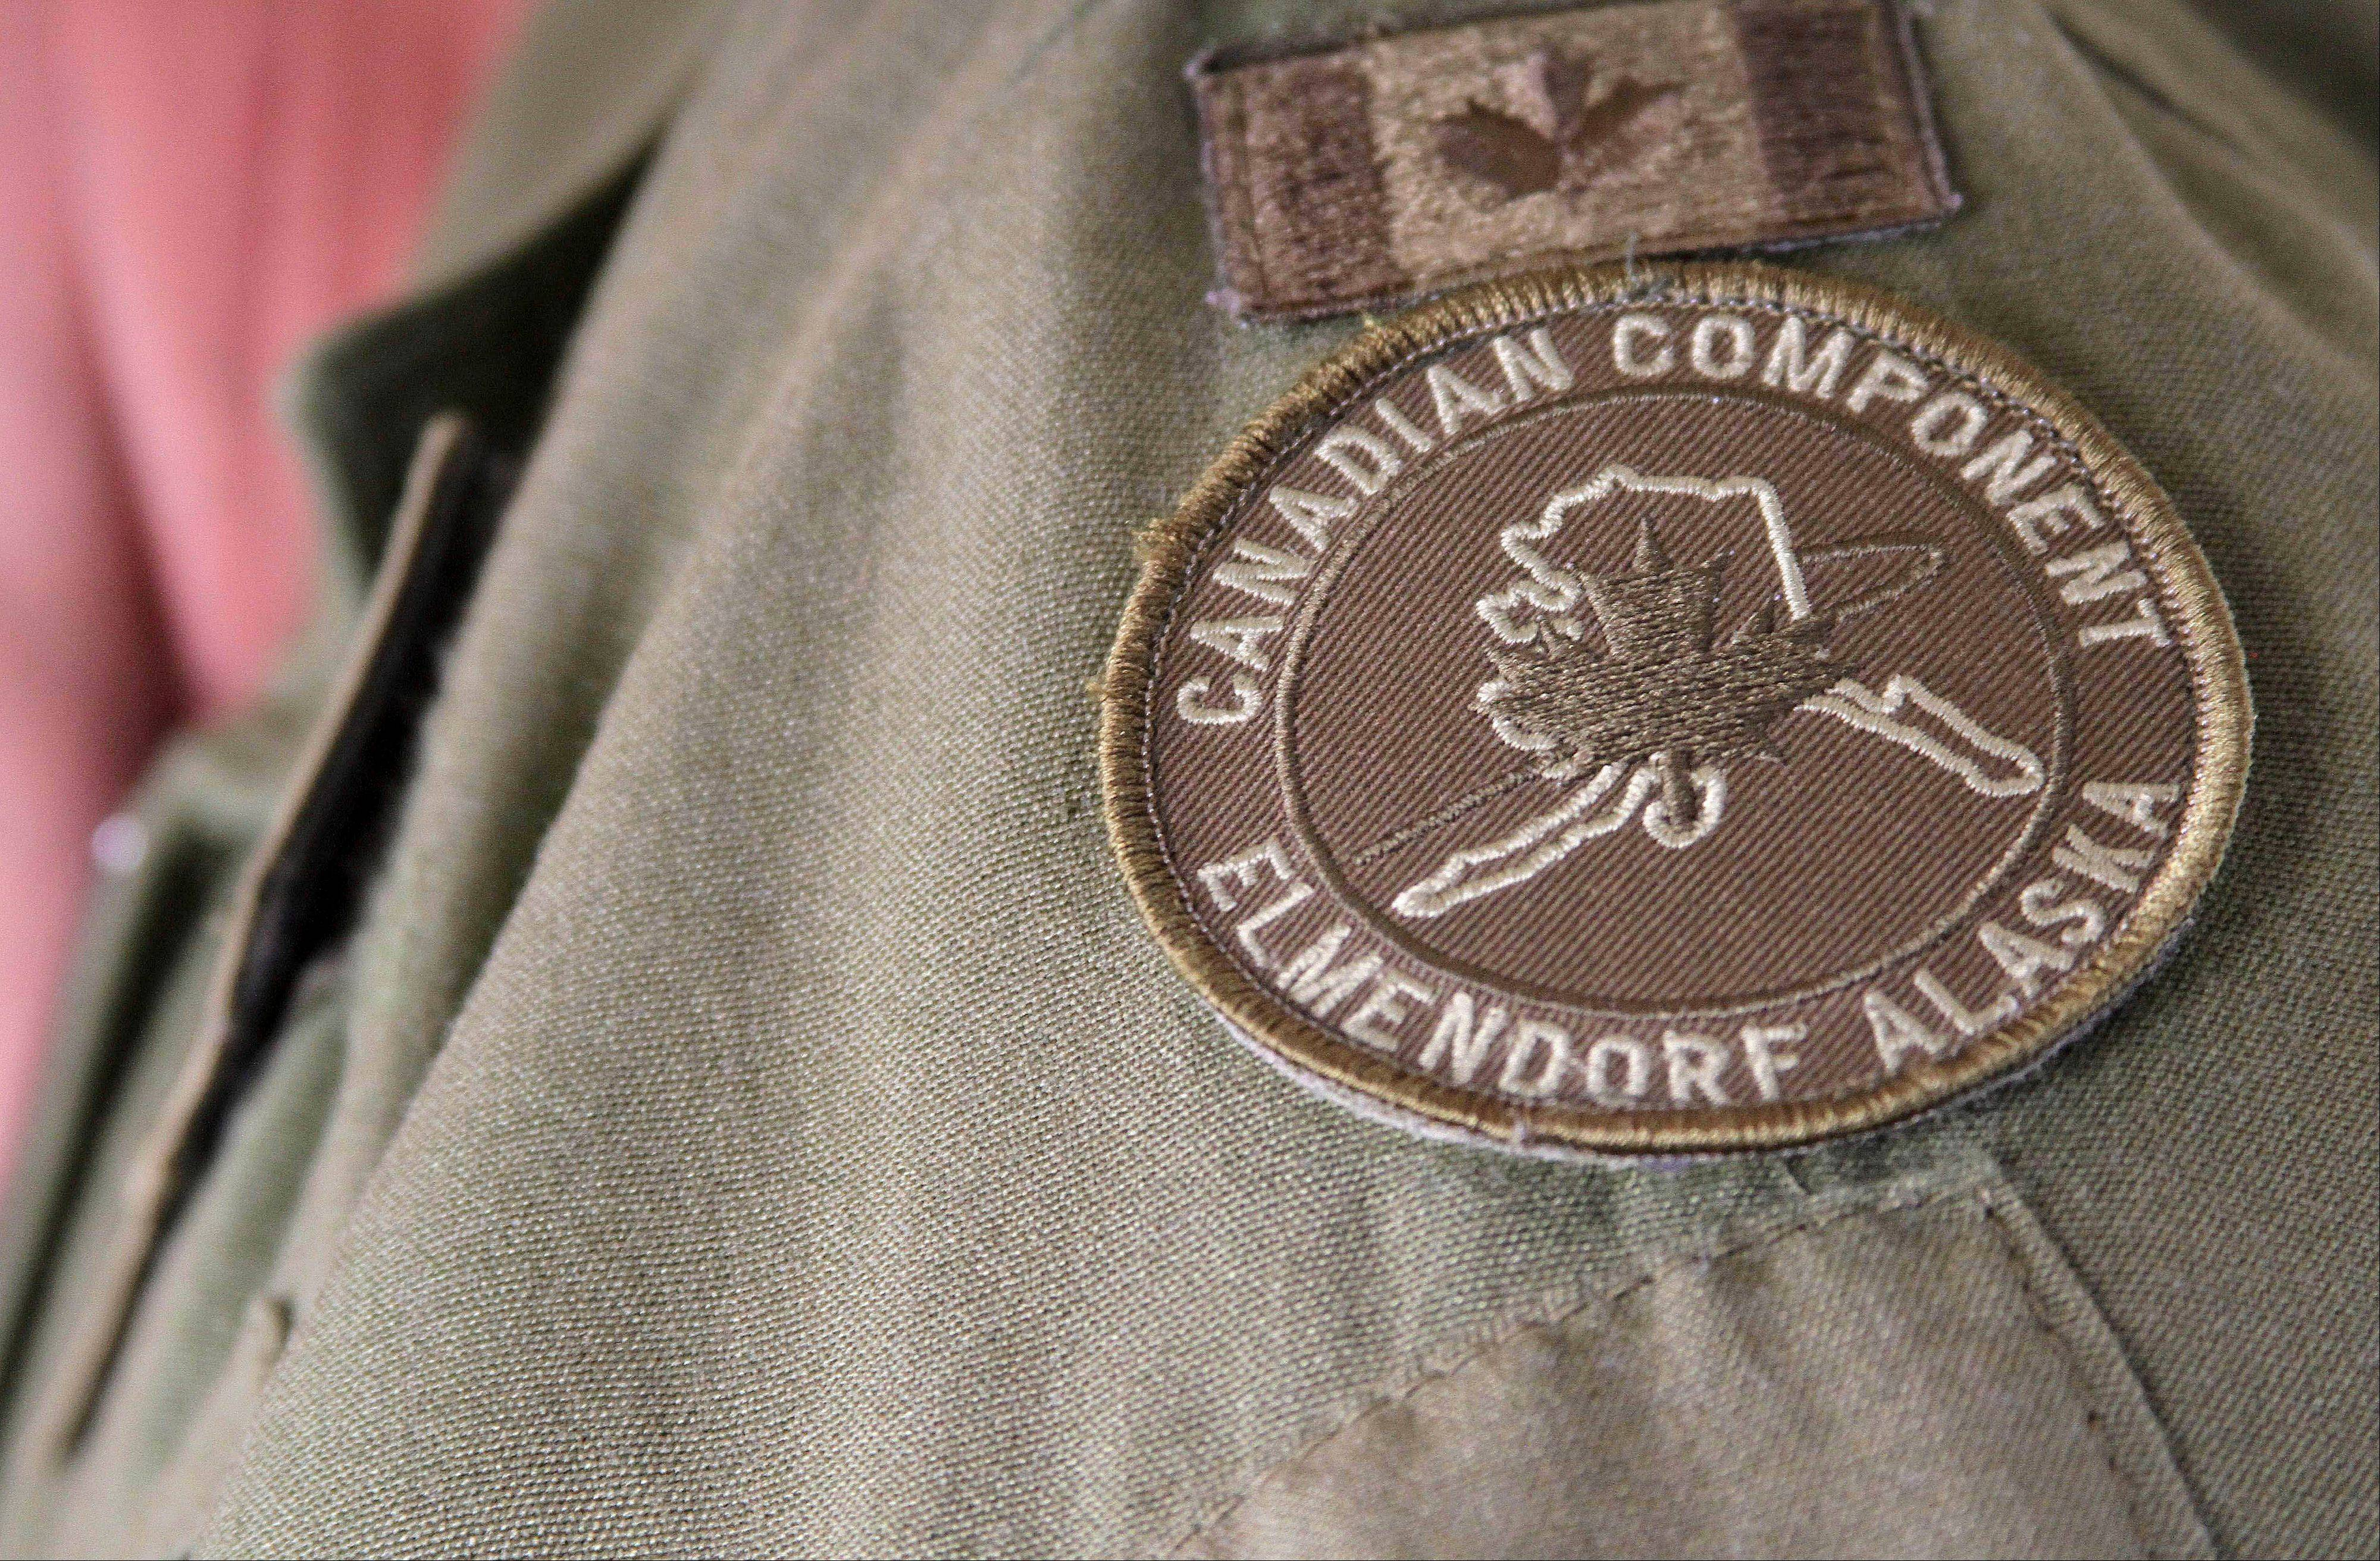 The NORAD patch worn by Col. Patrick Carpentier, deputy commander of the NORAD Alaska Region.